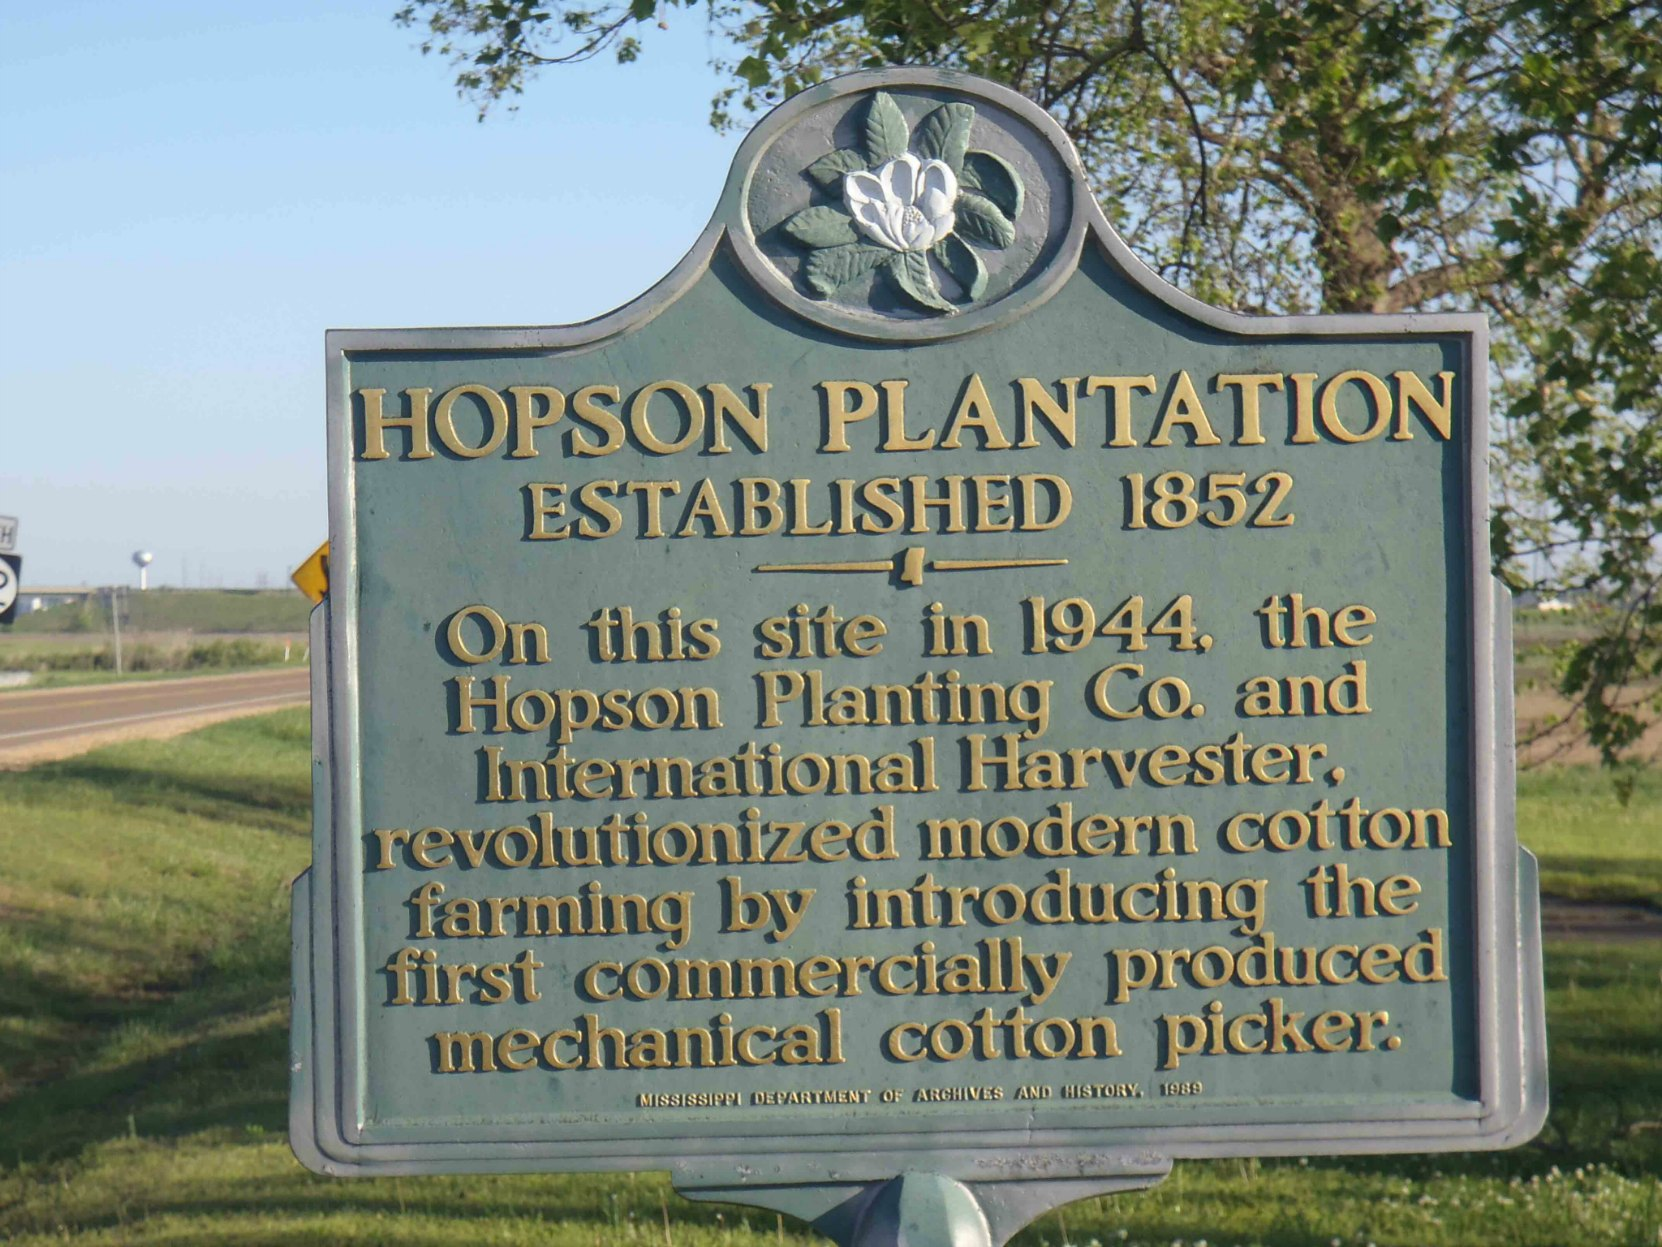 Mississippi Department of Archives & History marker for Hopson Plantation, Highway 49 at Hopson Farm, Coahoma County, Mississippi.